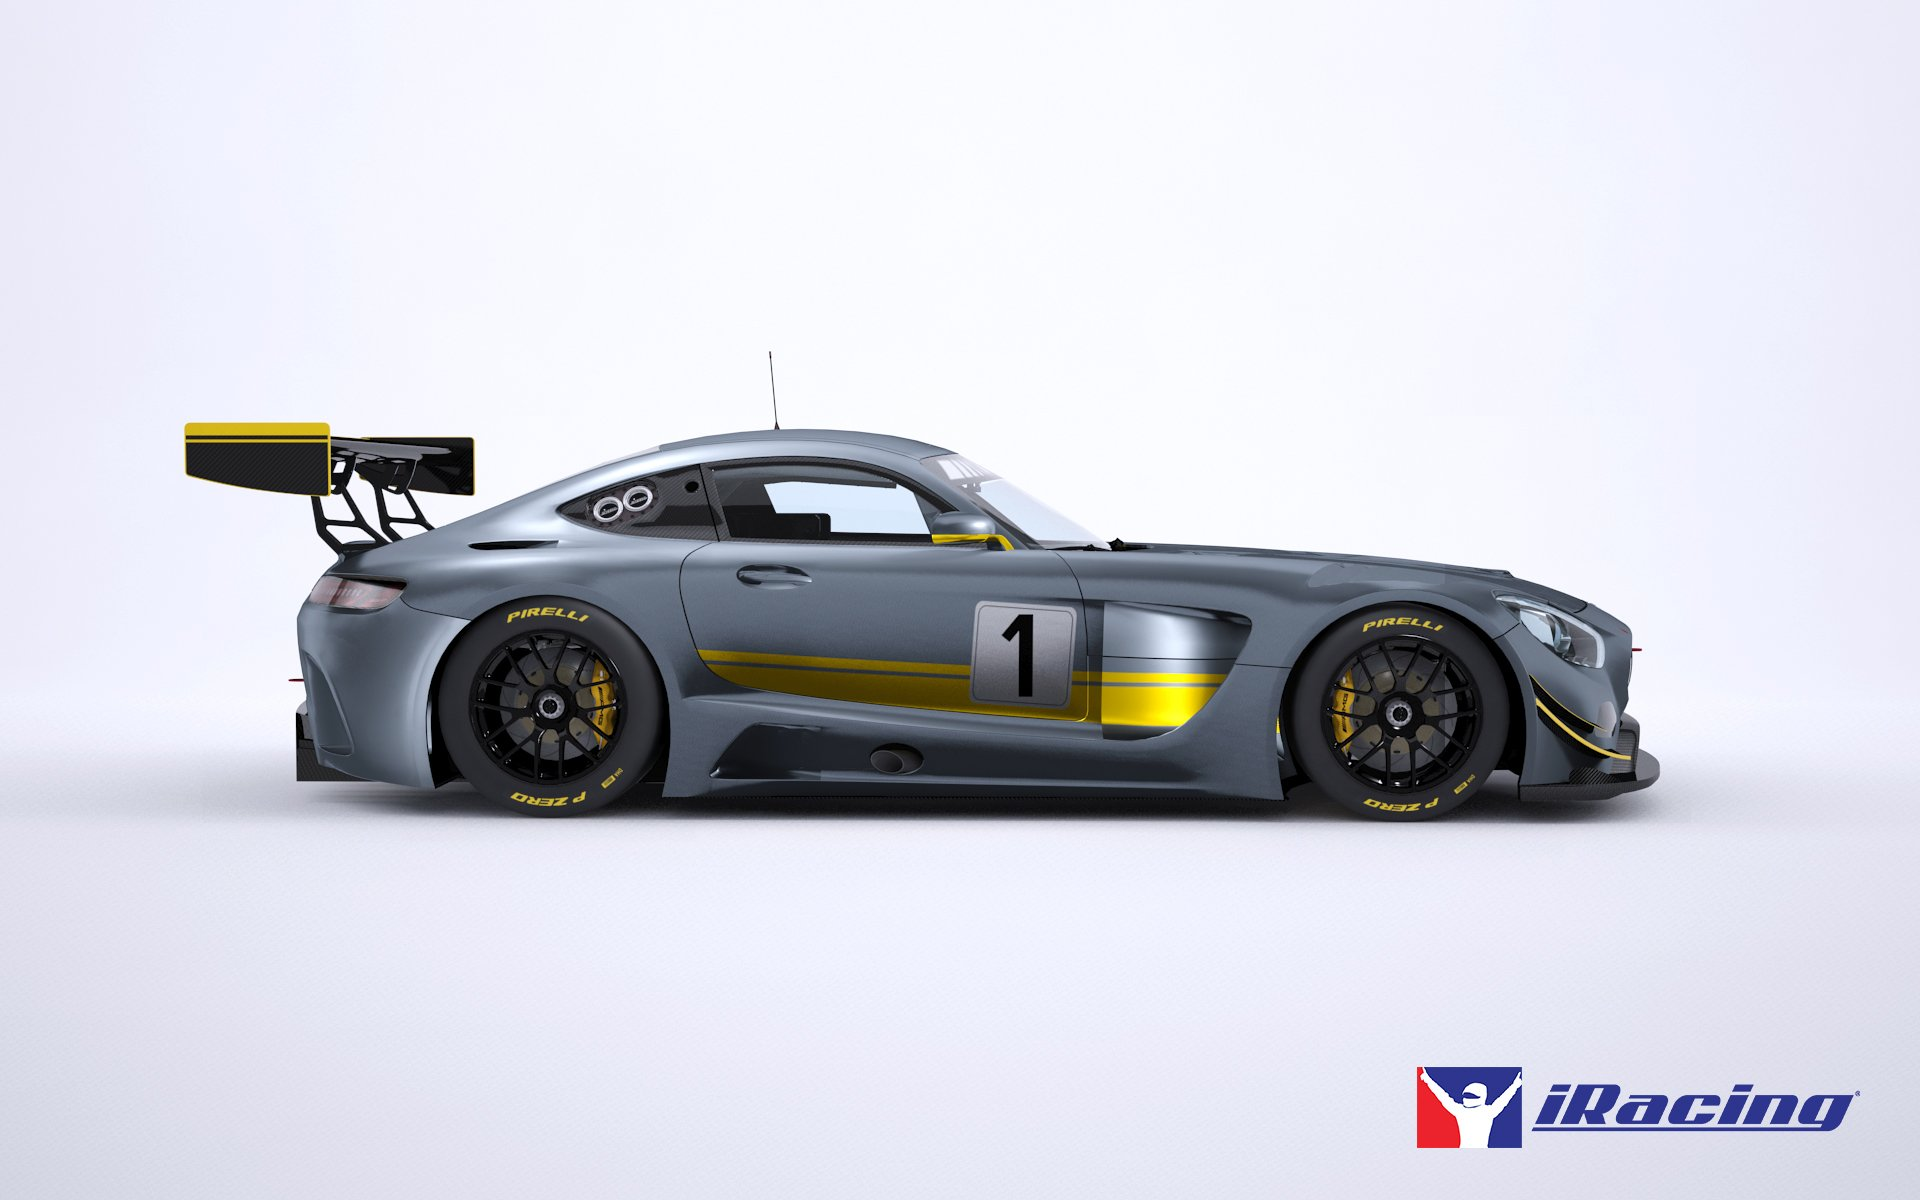 iracing mercedes amg gt3 first look inside sim racing. Black Bedroom Furniture Sets. Home Design Ideas